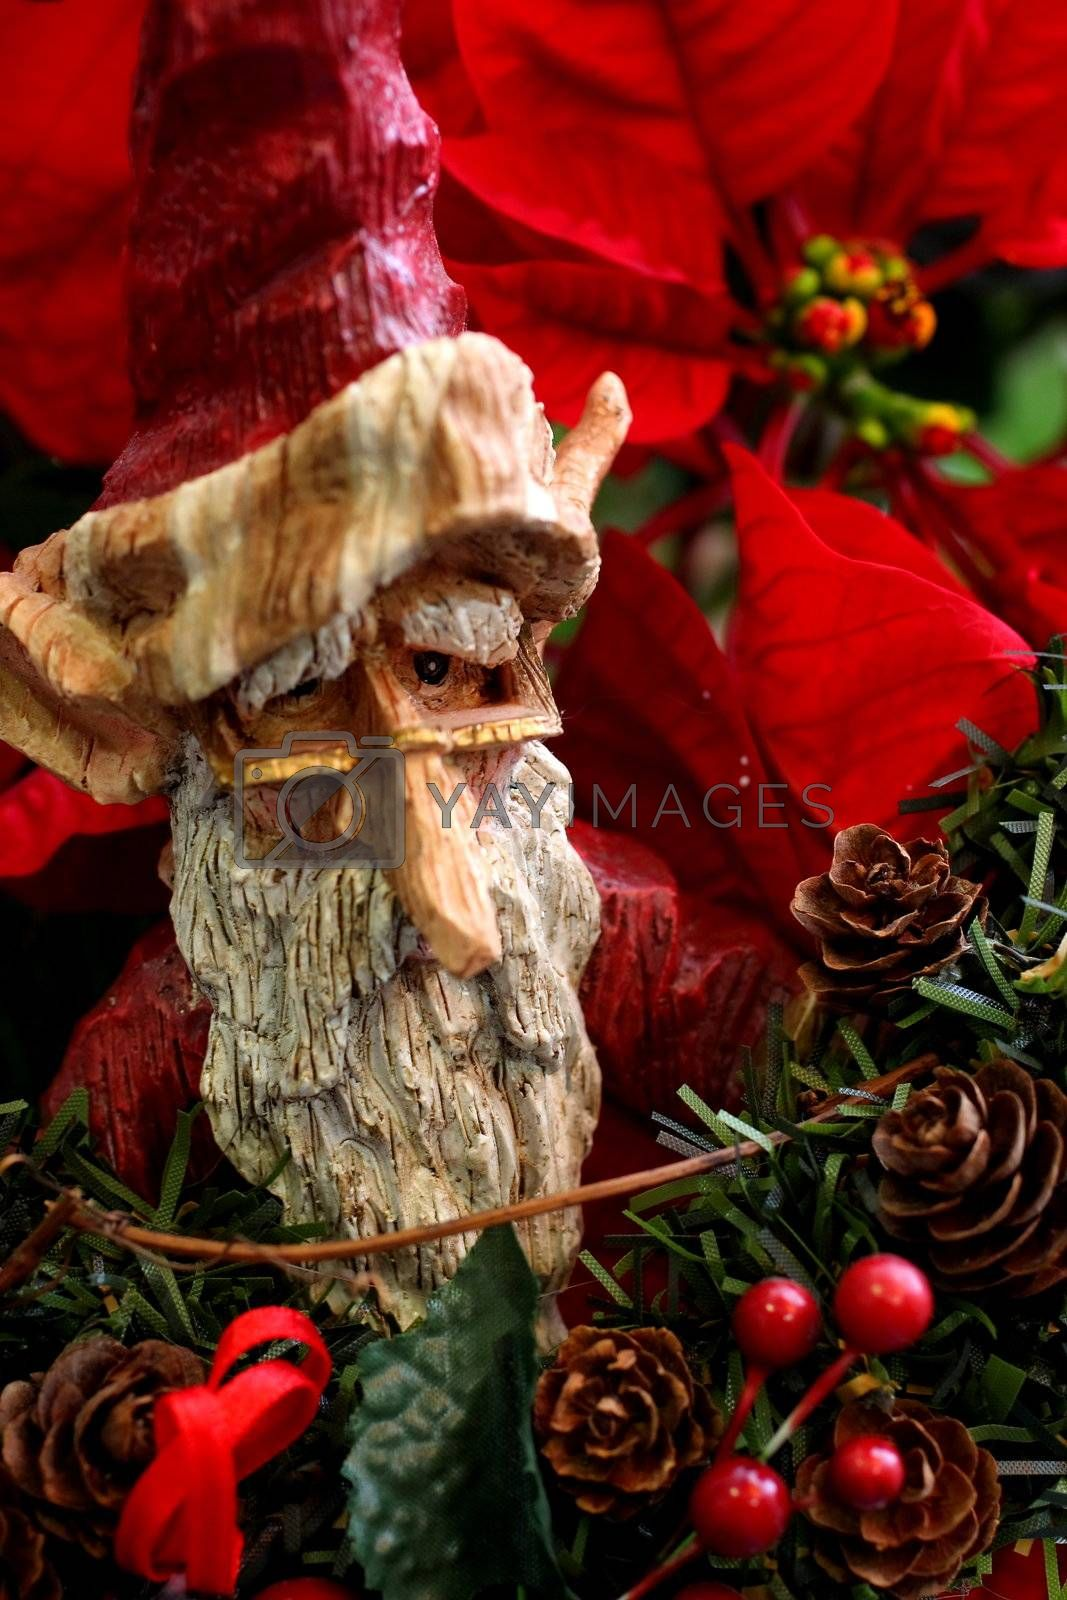 Wooden Statue of Santa Claus elf on poinsetta backdrop